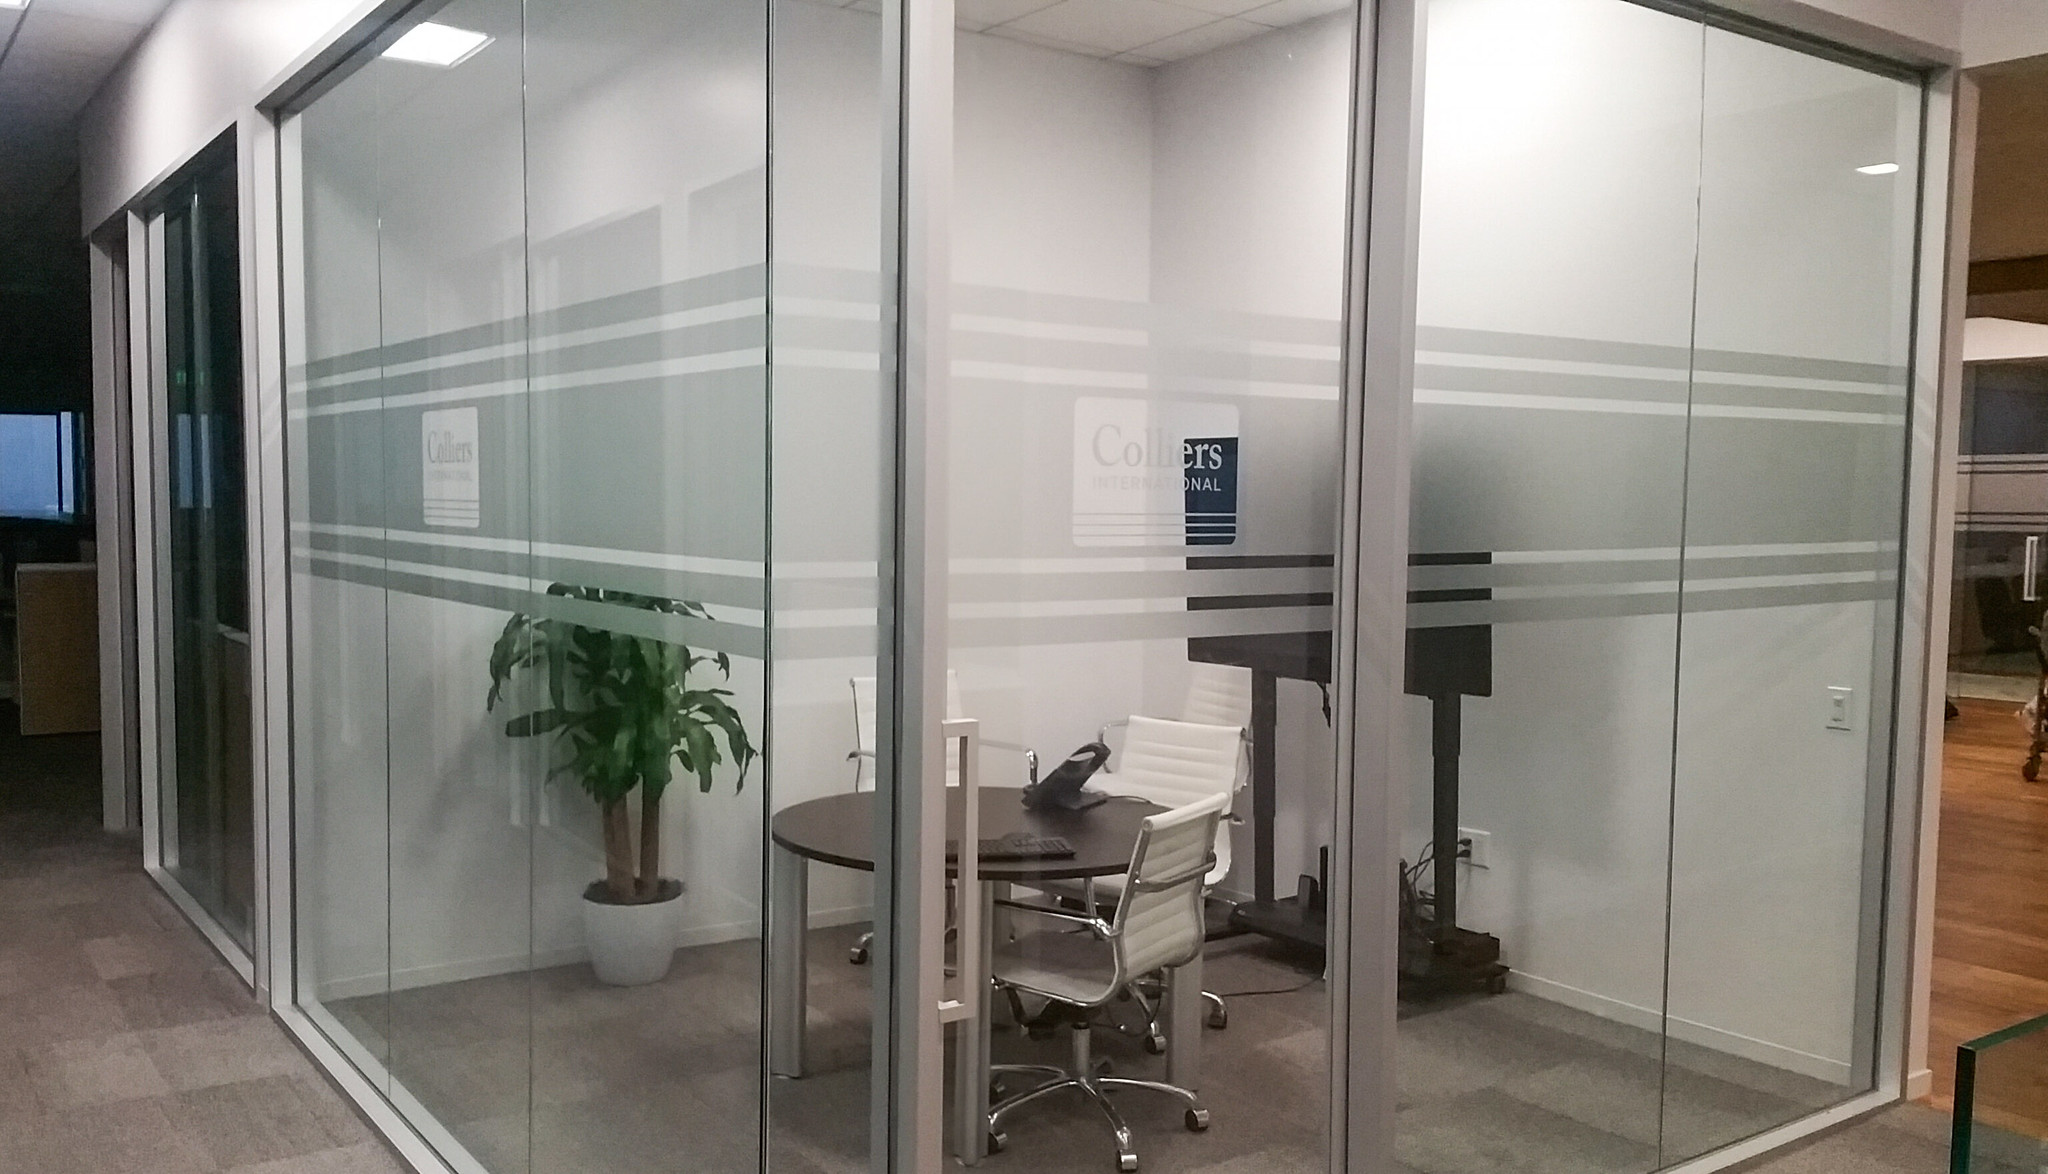 Colliers LA - small conference room etch vinyl privacy band